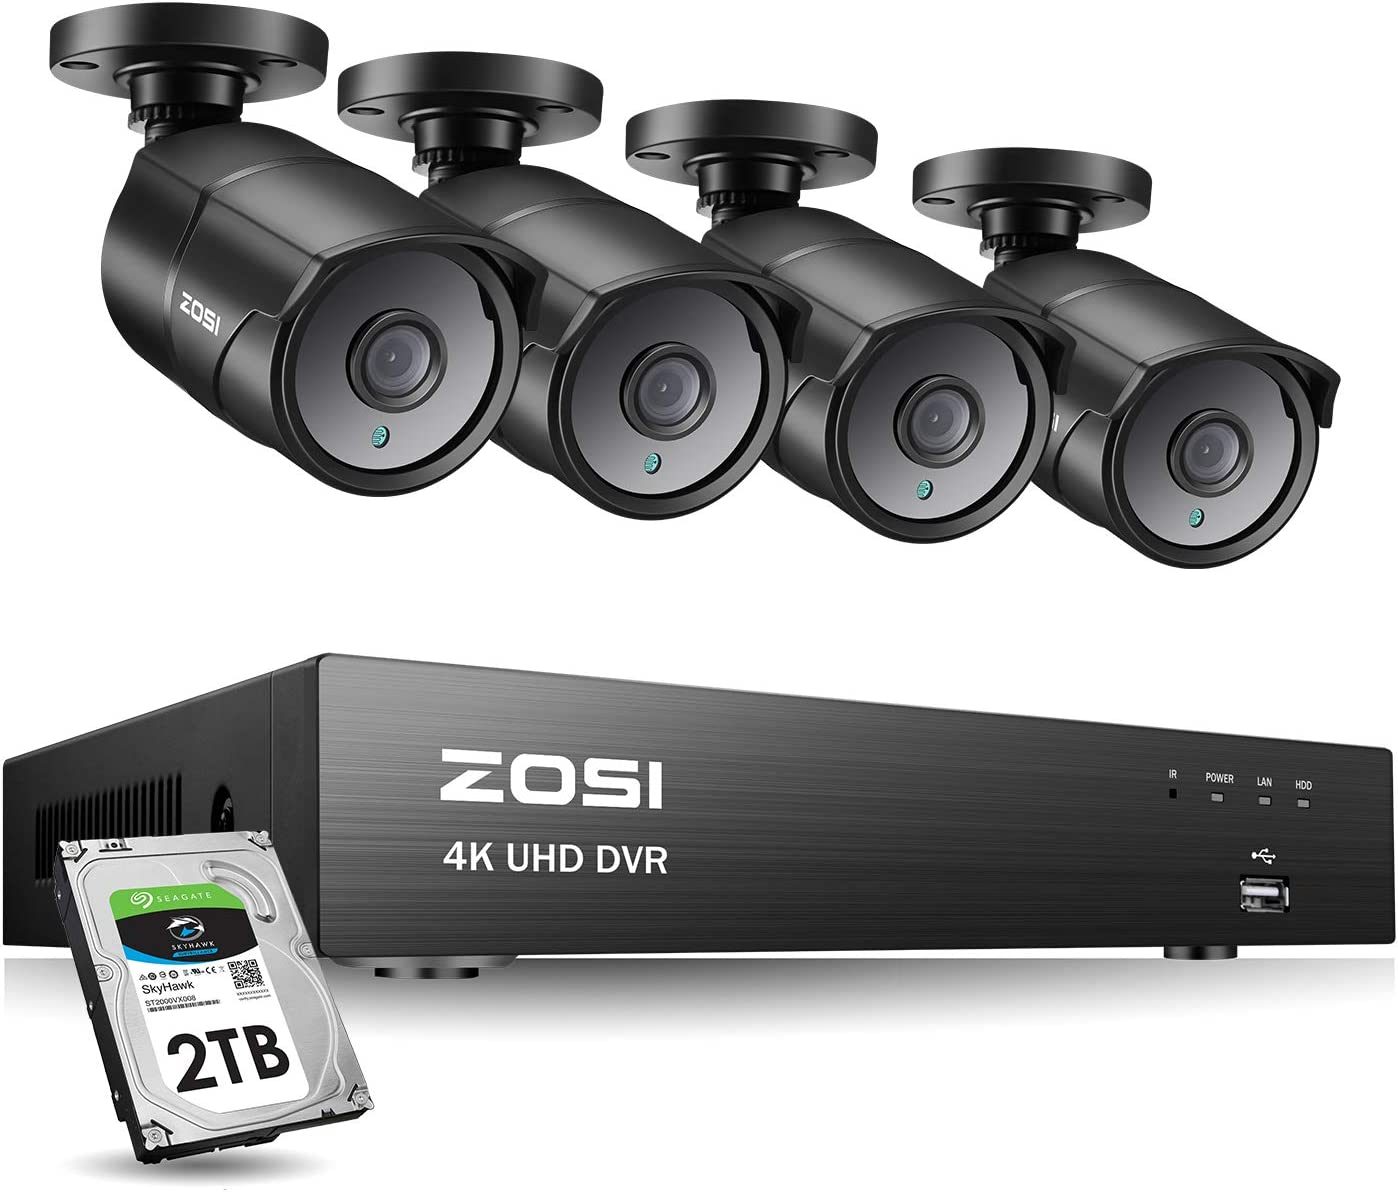 ZOSI Ultra HD 4K Outdoor Security Camera System, 8 Channel H.265 CCTV DVR with 4 x 4K 8MP Bullet Camera Kit Weatherproof, 100ft Night Vision, 2TB Hard Drive, Remote Access